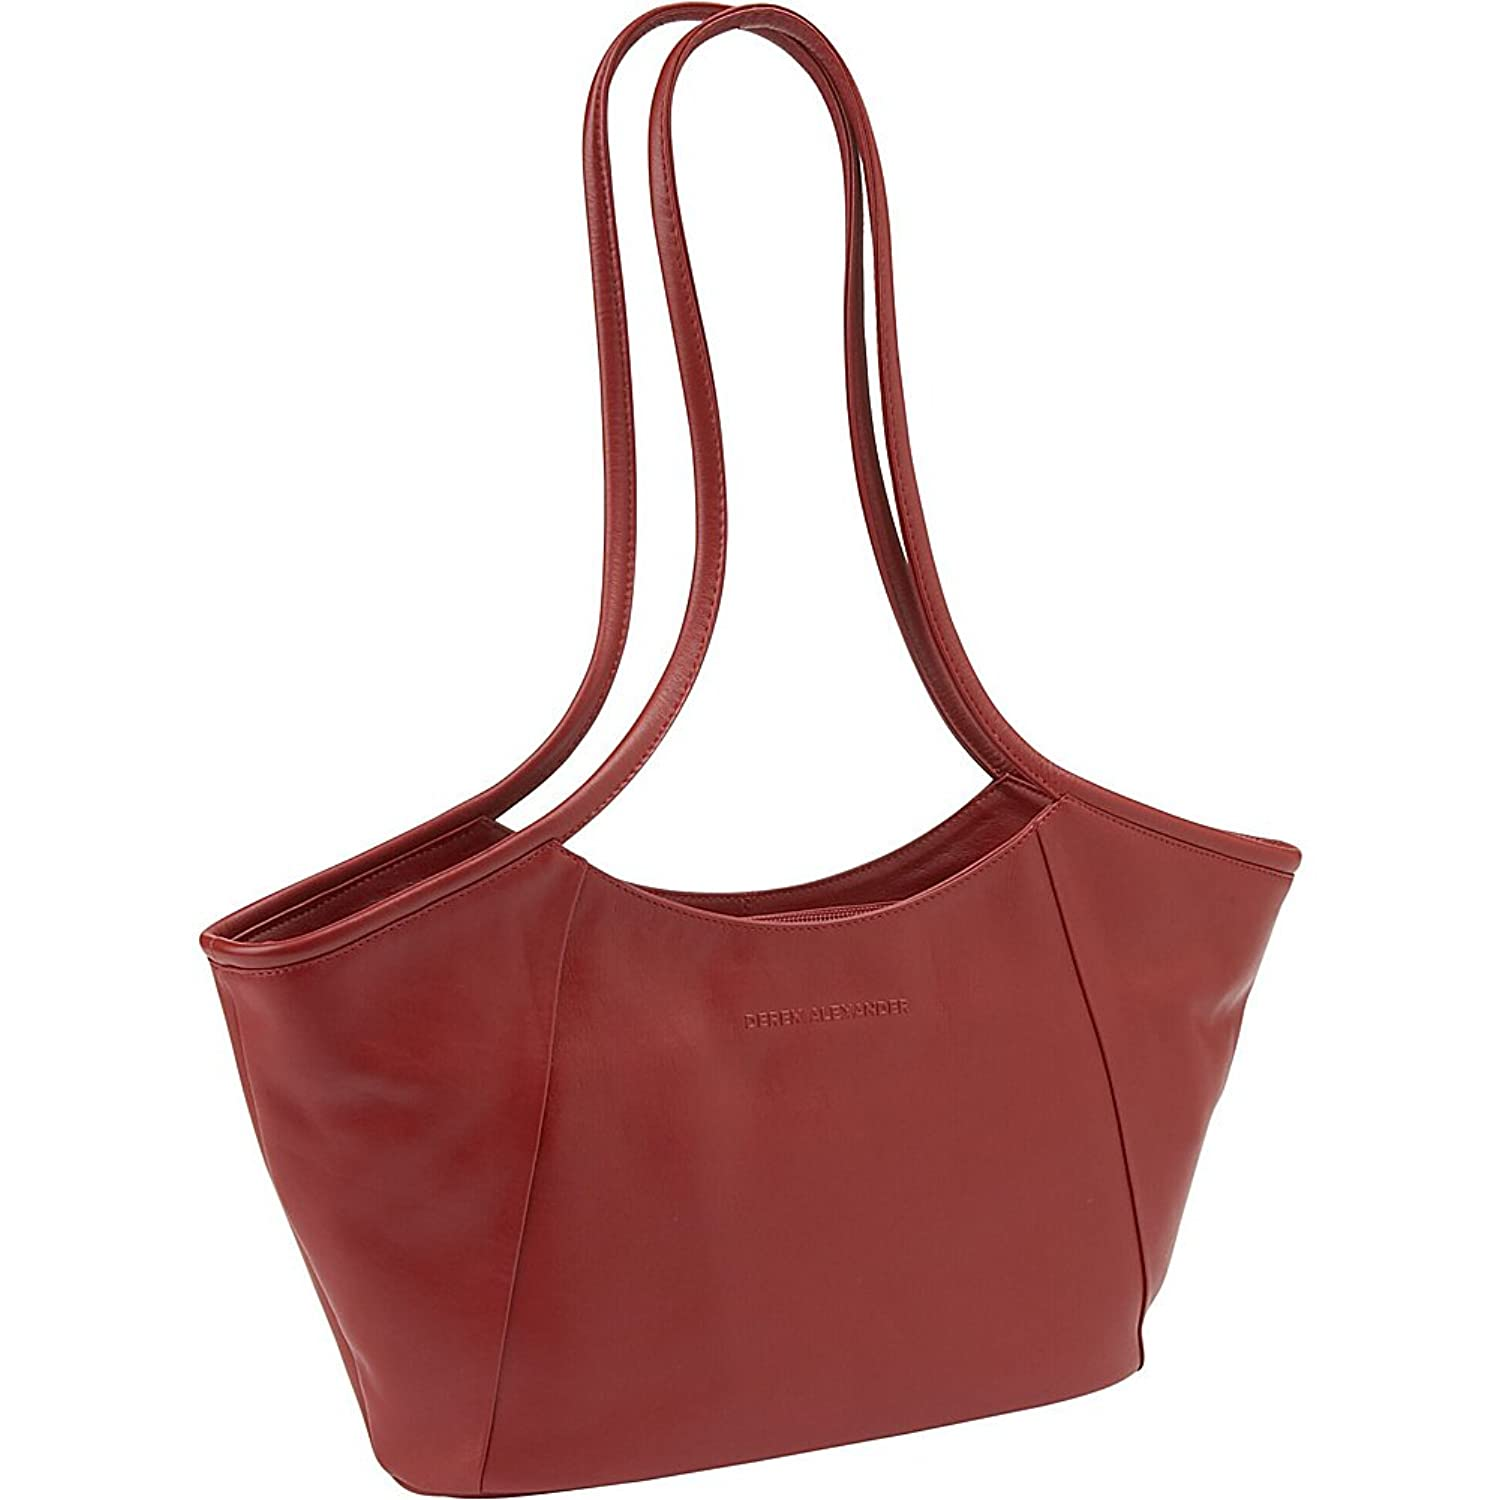 Derek Alexander East/West Geometric Tote